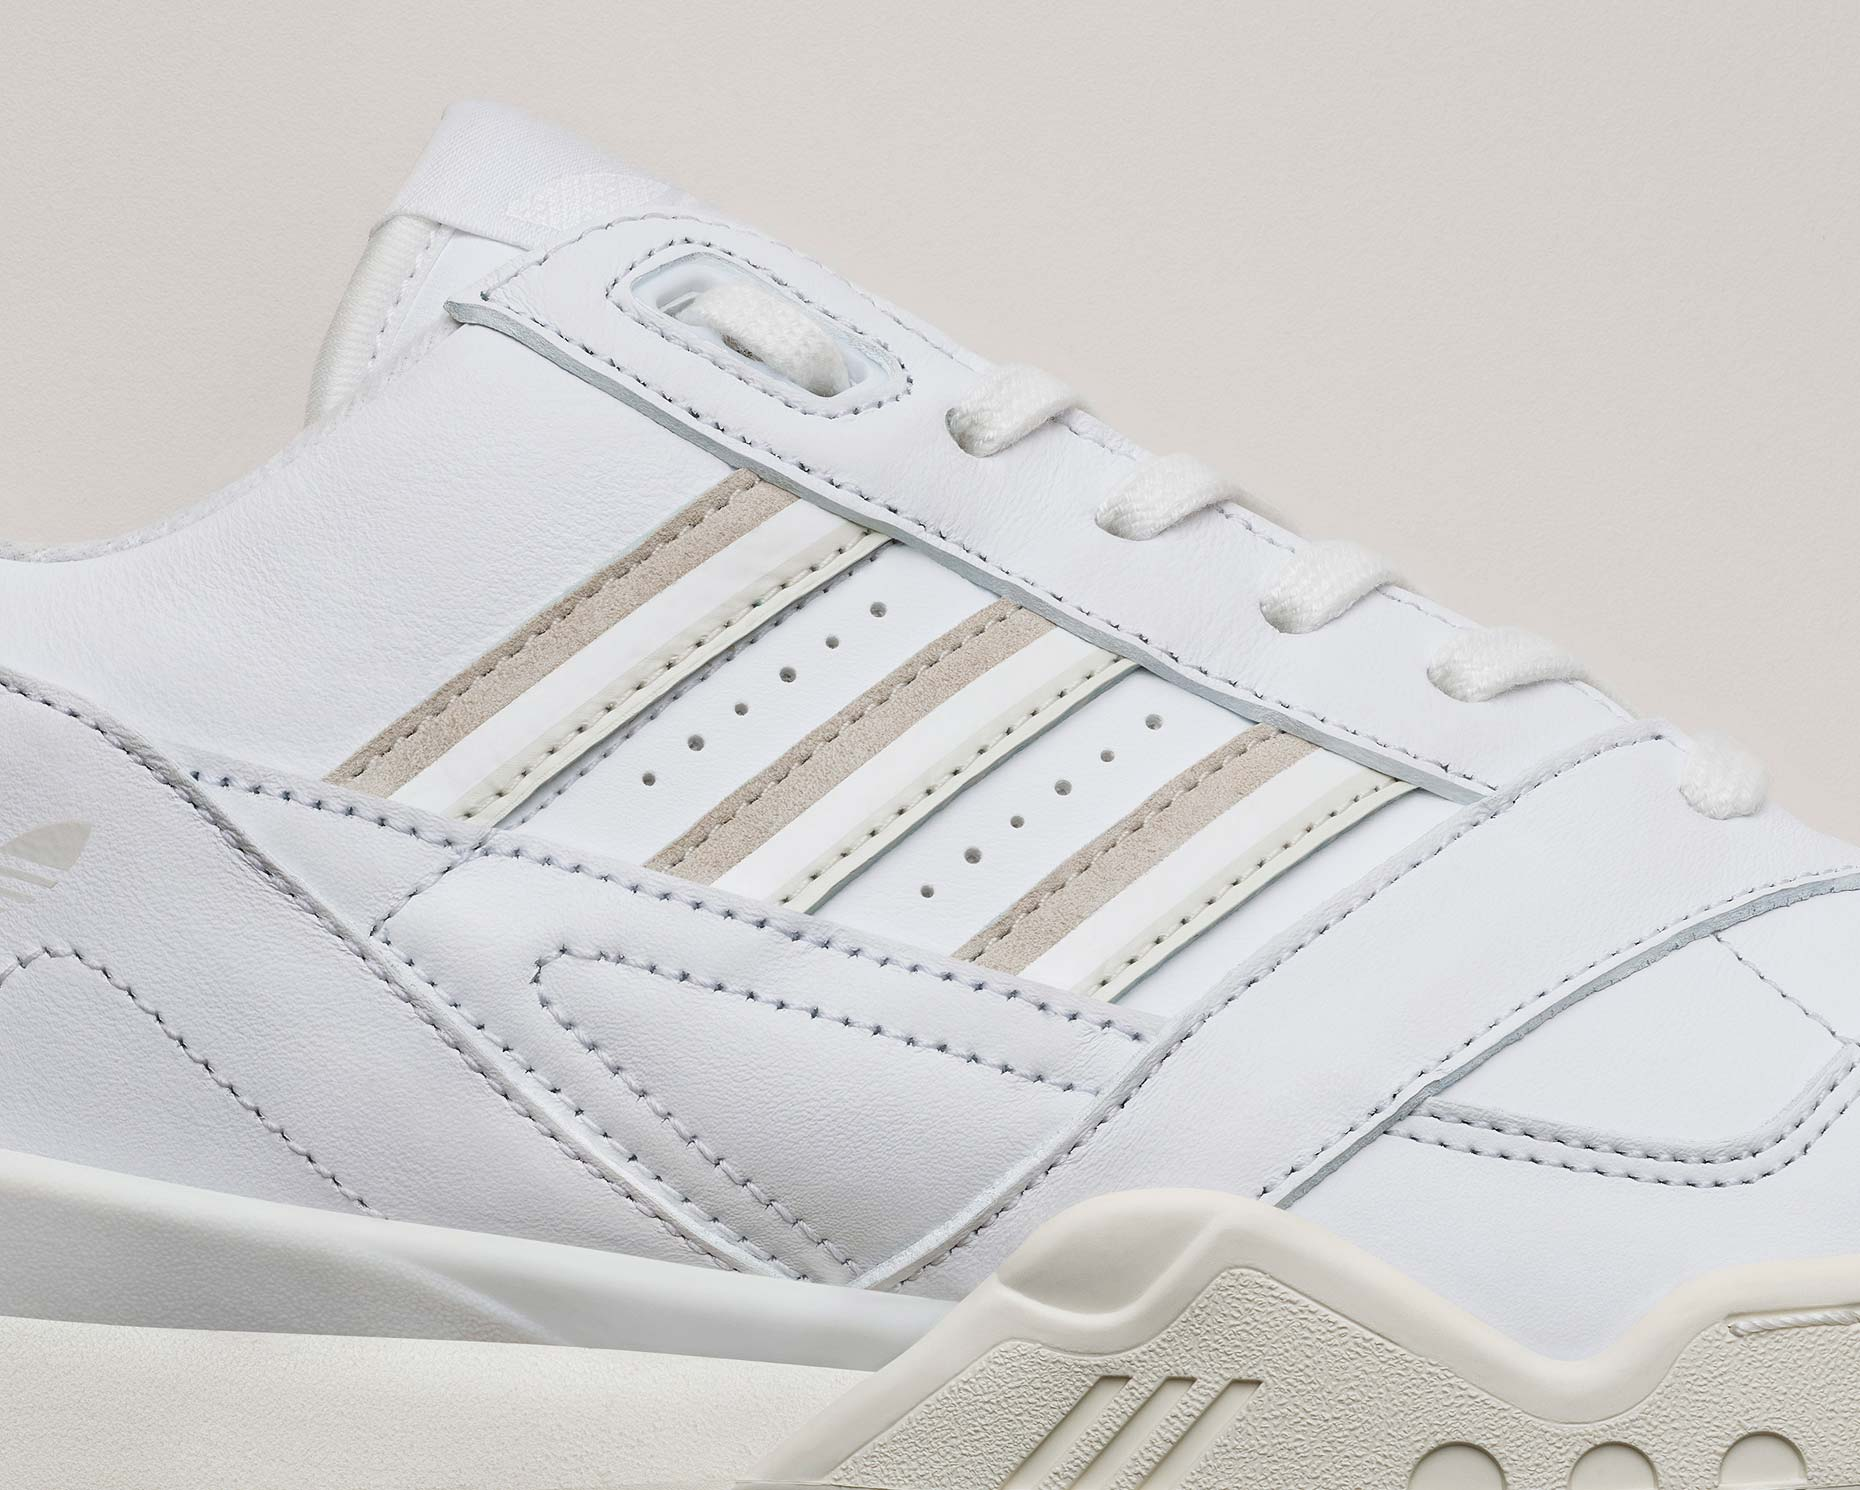 adidasOriginals_SS19_SuperCourt_ARTrainer_CG6465_01_Detail_COMP_c